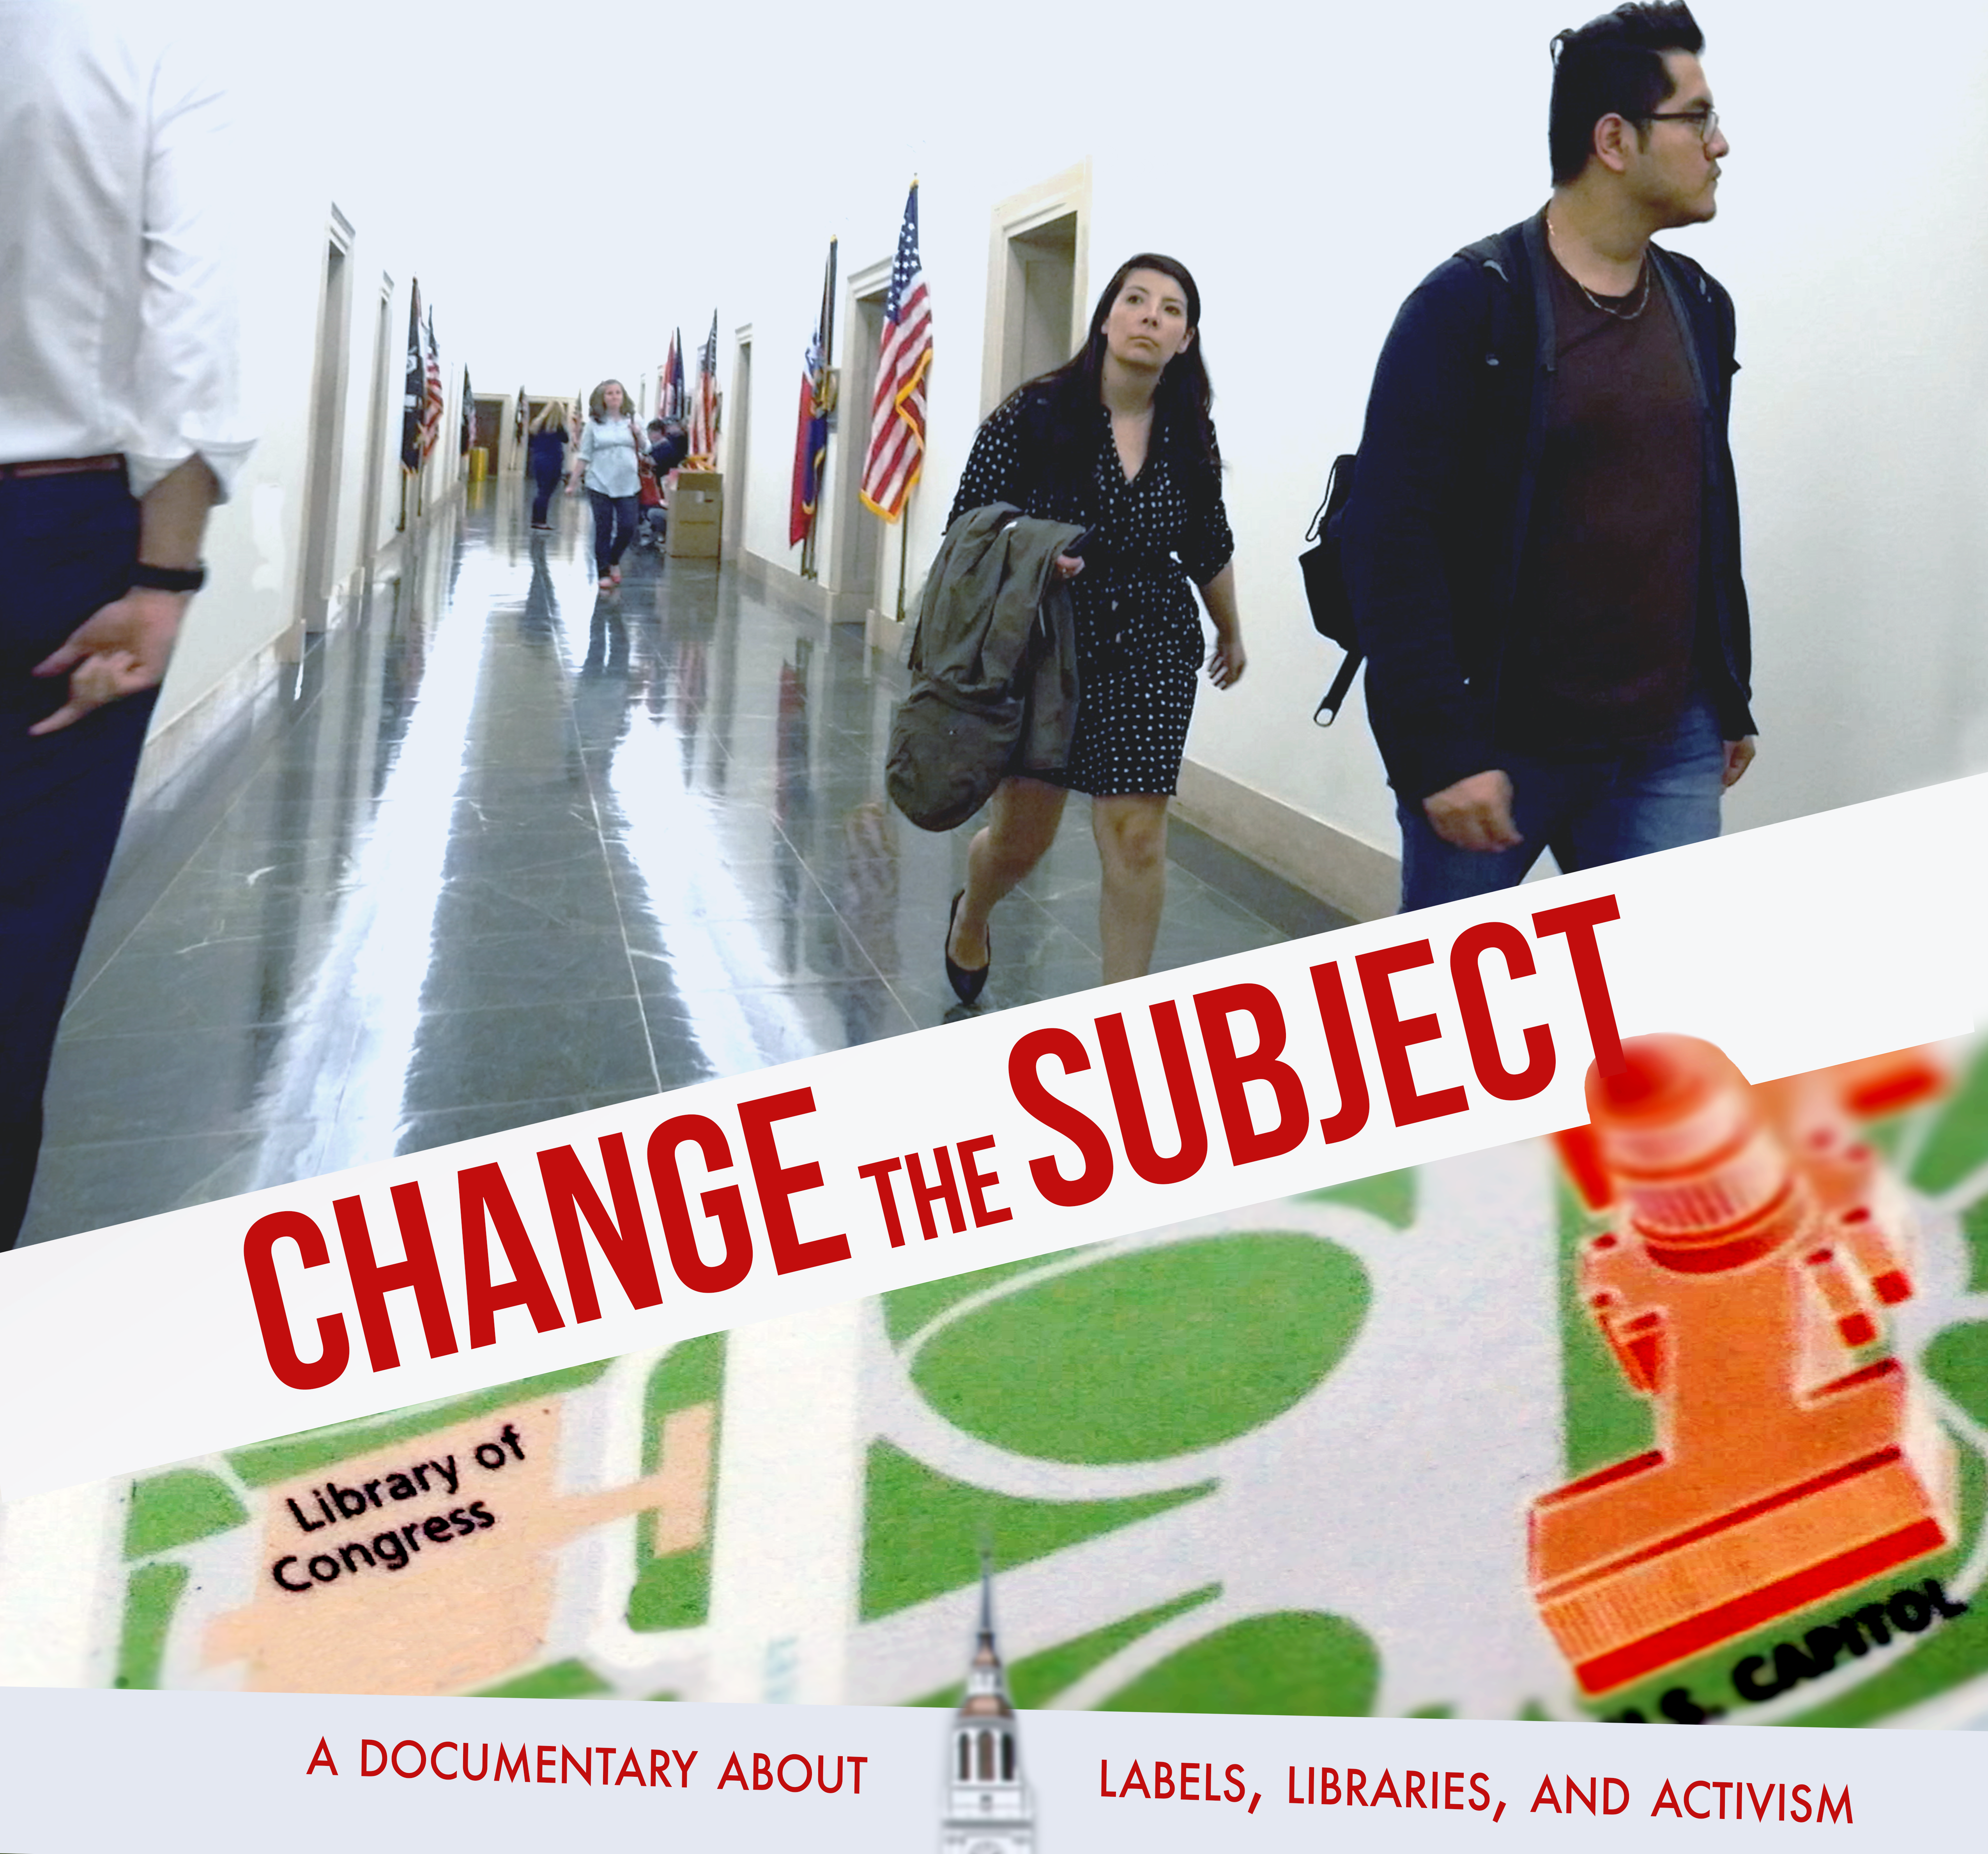 Change the Subject: Film Screening and Q&A